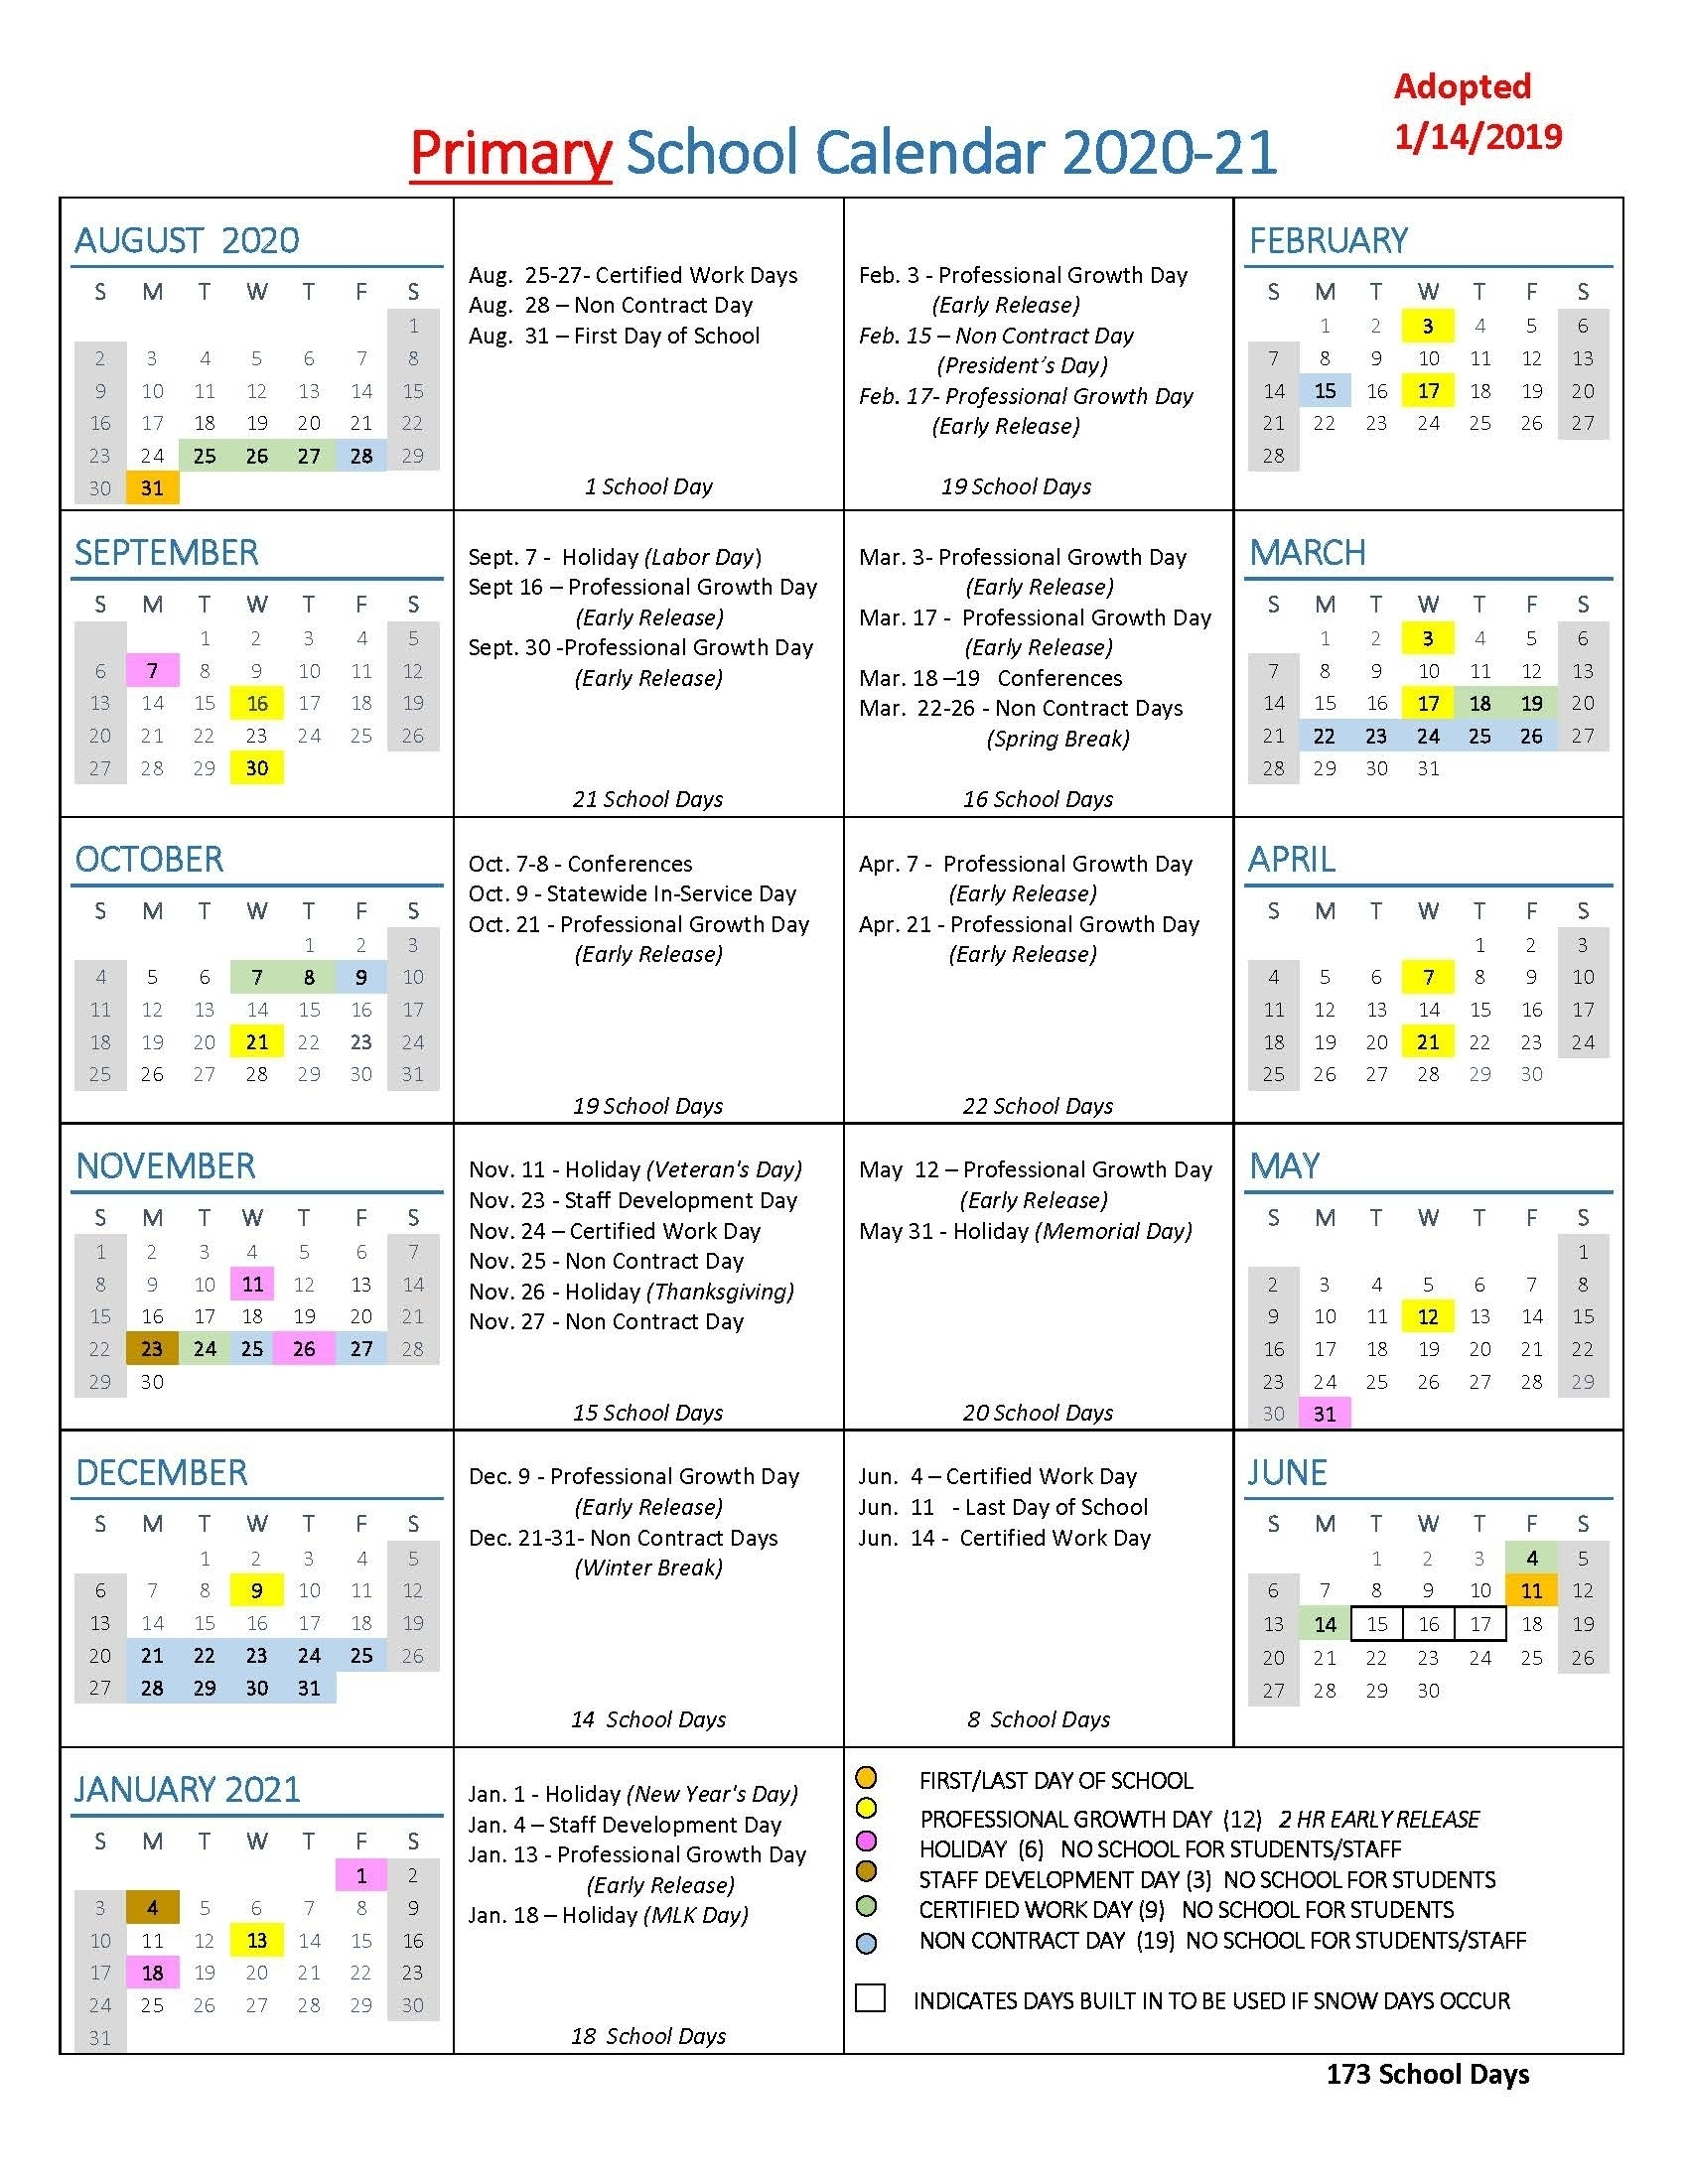 Calendar With All The Special Days In 2020 - Calendar for What Are Special Days In 2020